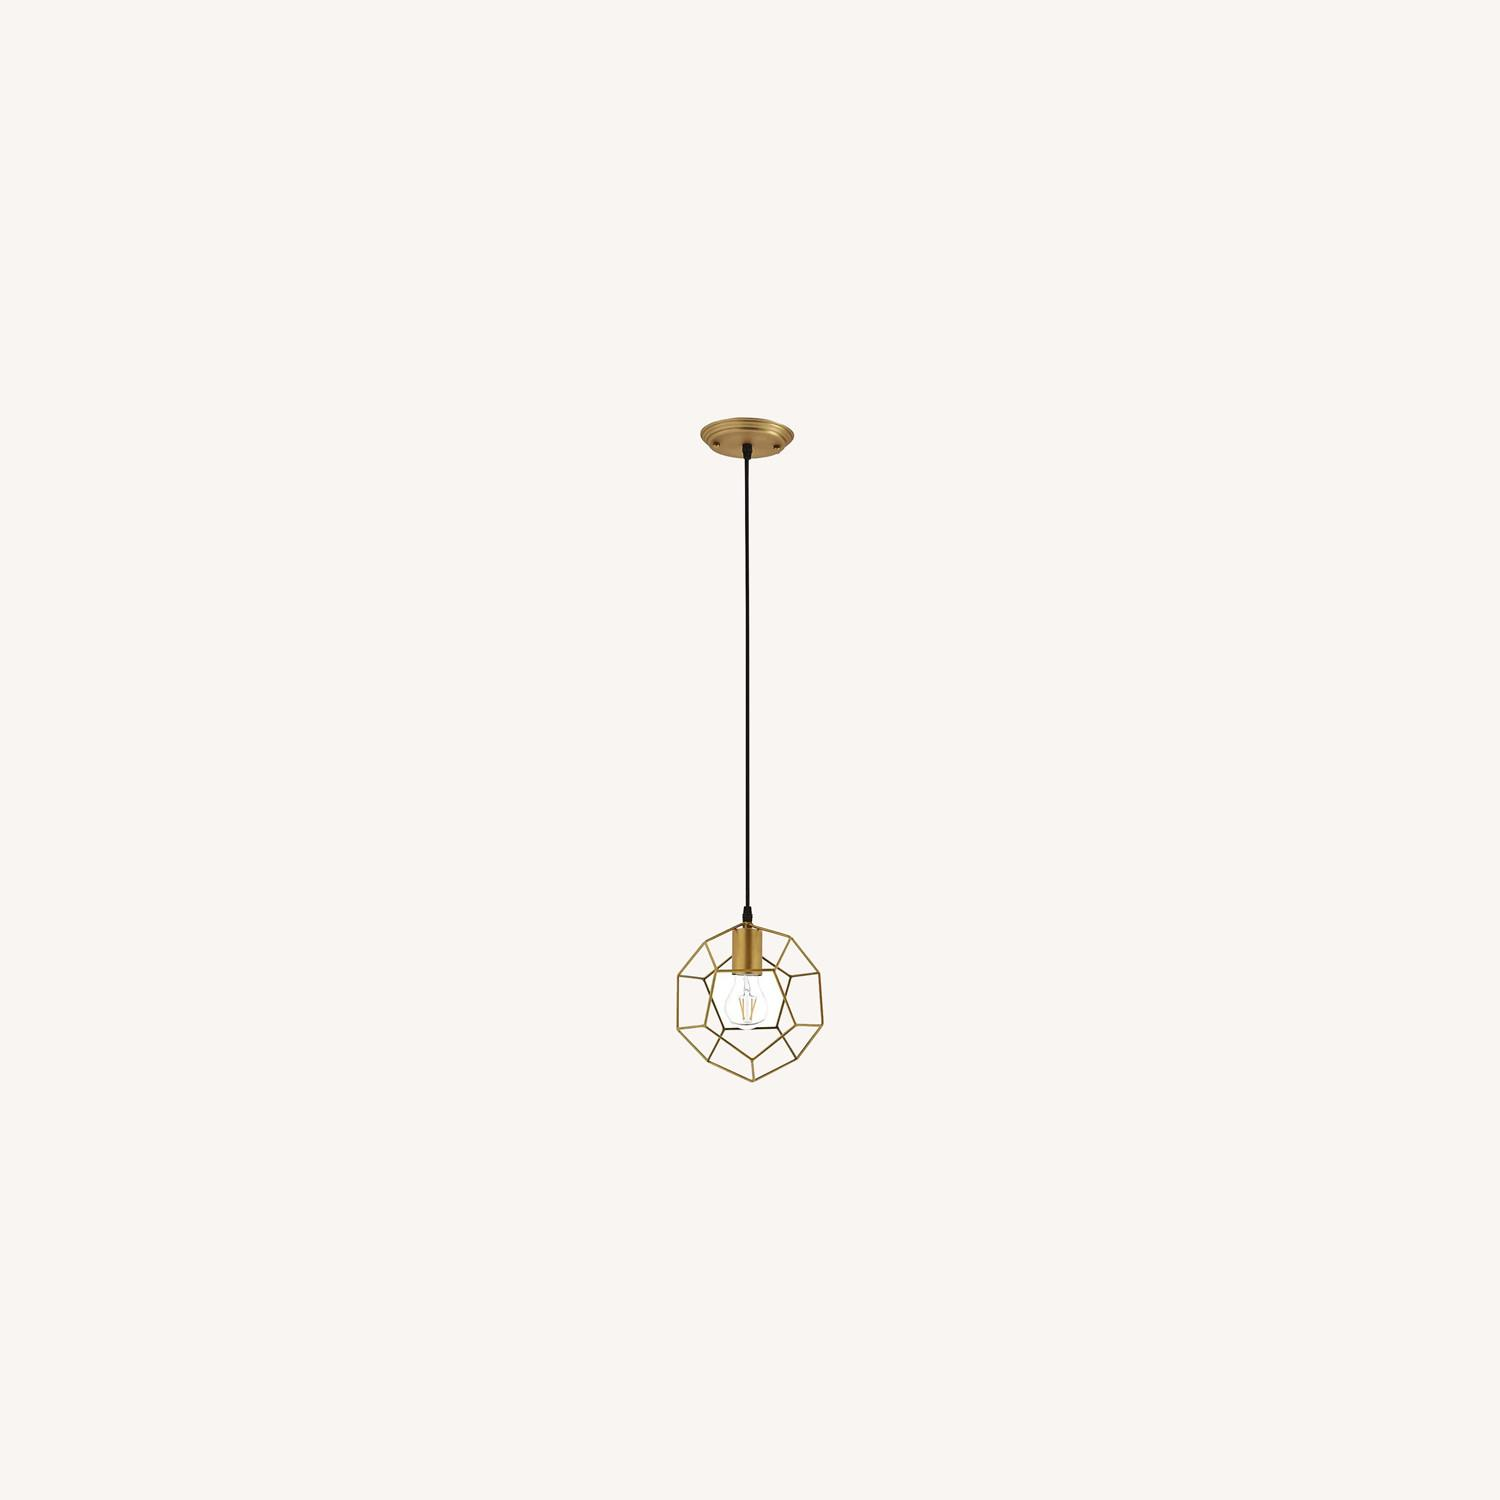 Contemporary Ceiling Lamp In Gold Metal Finish - image-5